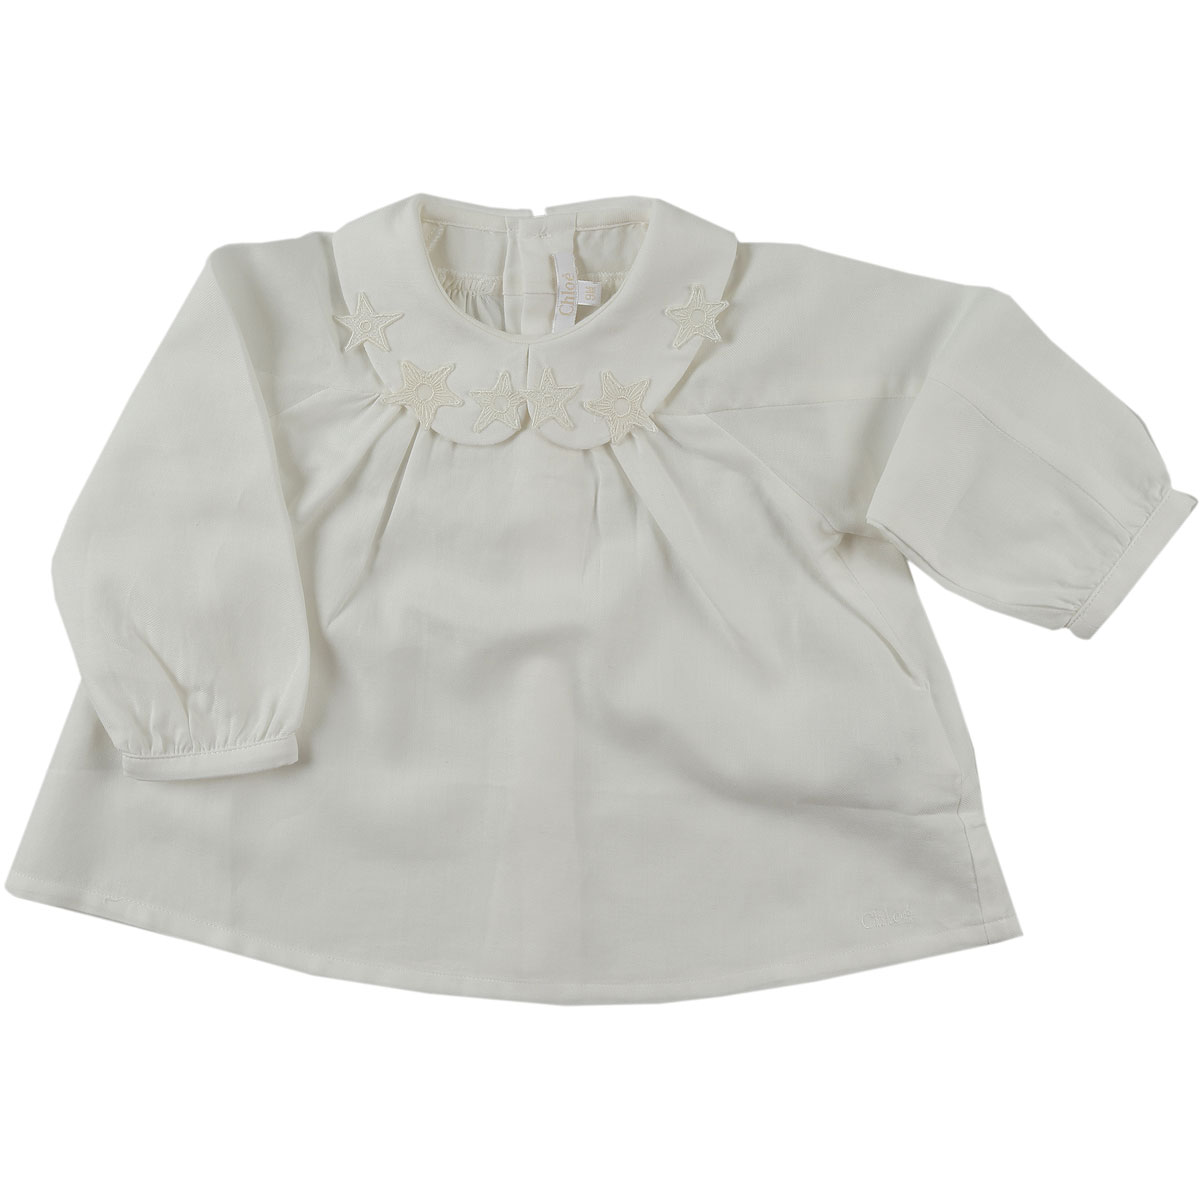 Image of Chloe Baby Shirts for Girls, White, Cotton, 2017, 12M 18M 2Y 3Y 6M 9M